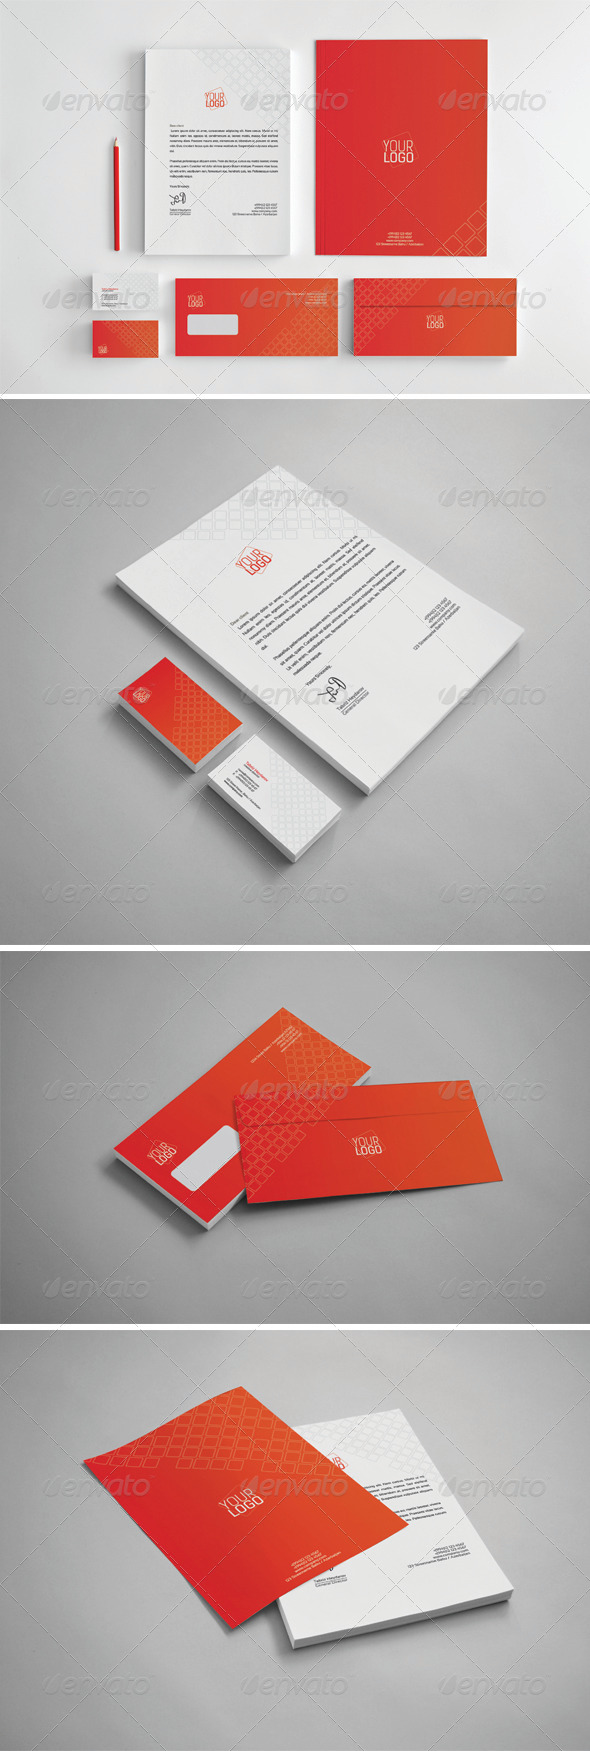 Red Cubes Stationery - Stationery Print Templates